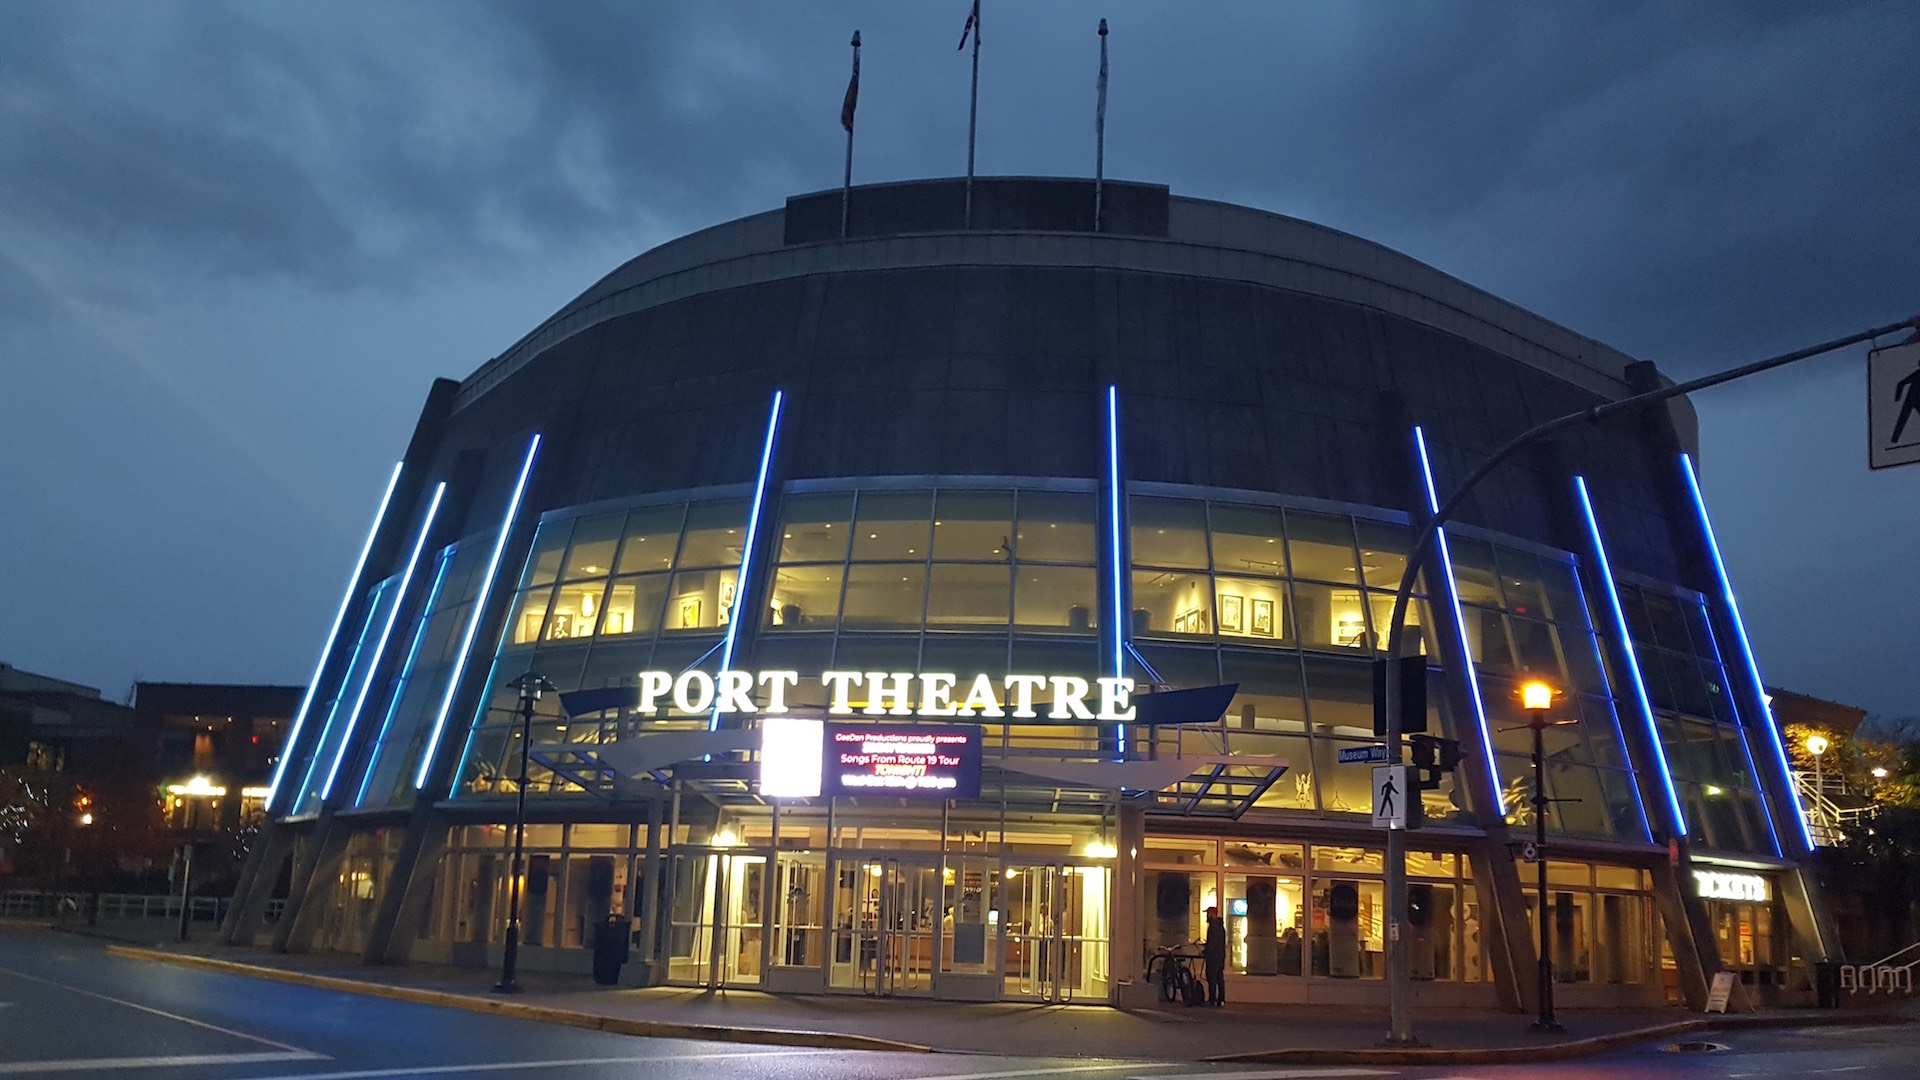 Outside image of the Port Theatre